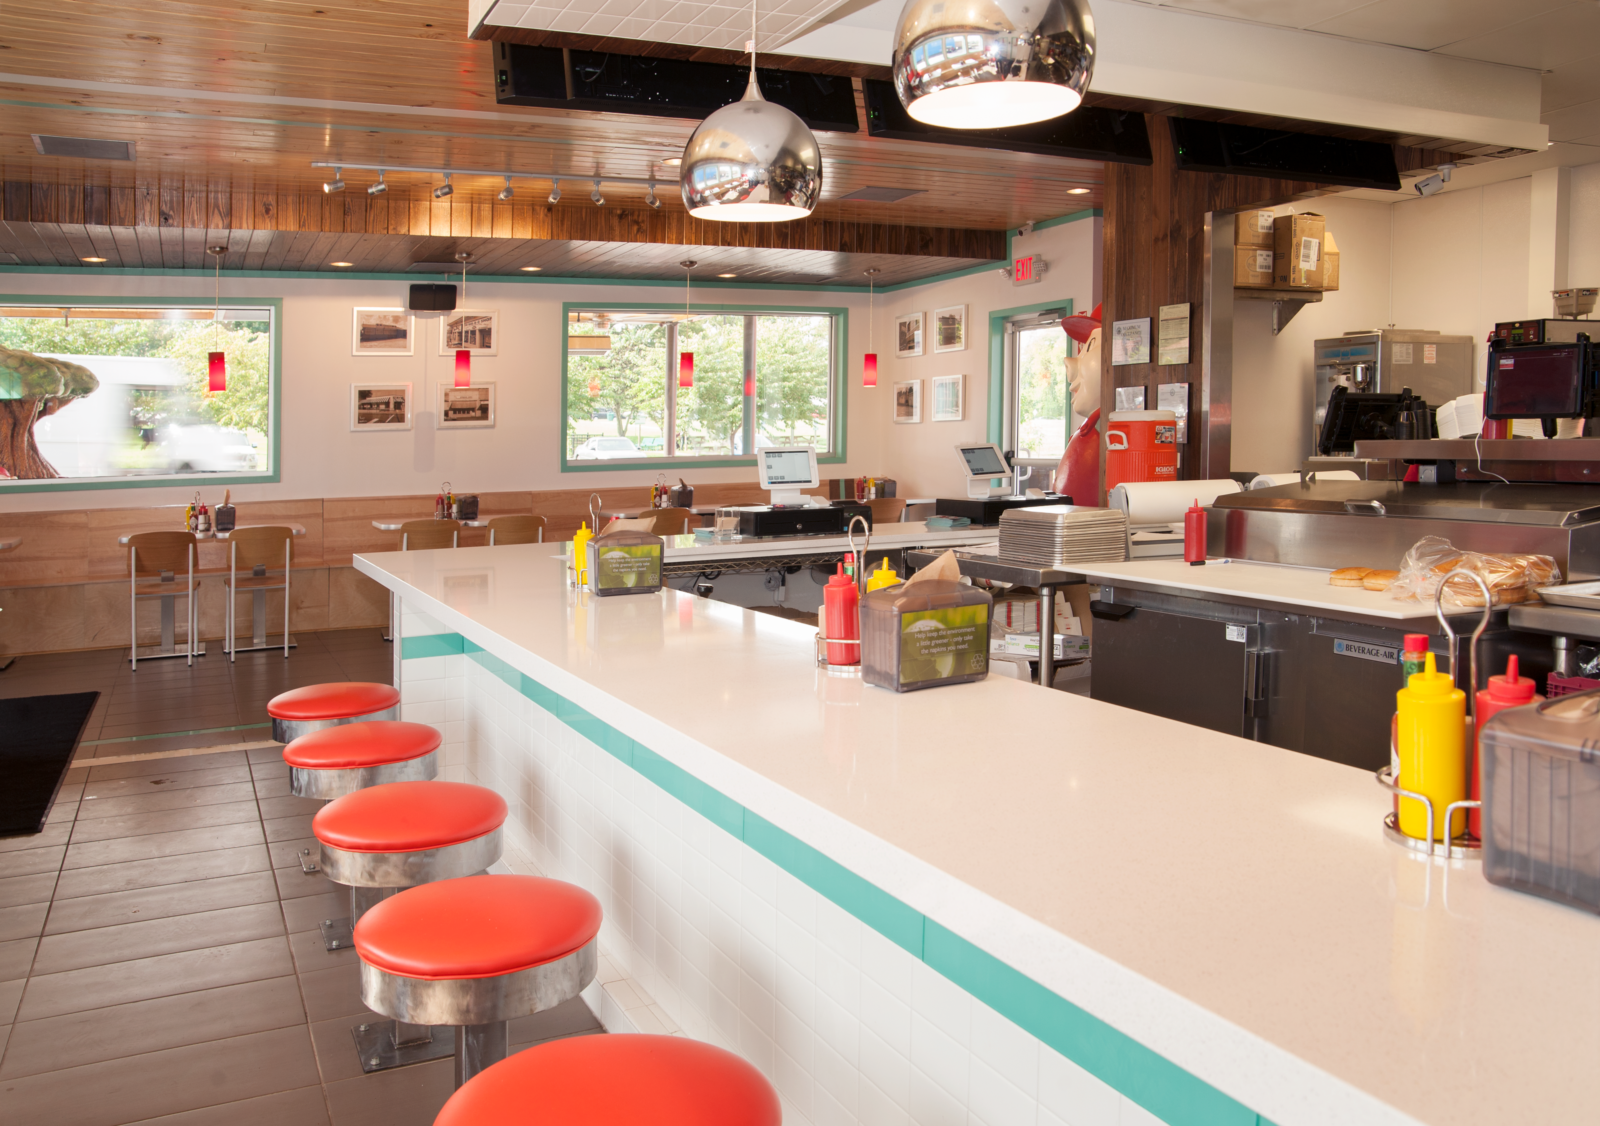 The interior lunch counter in Hugh Baby's with red retro counter stools.